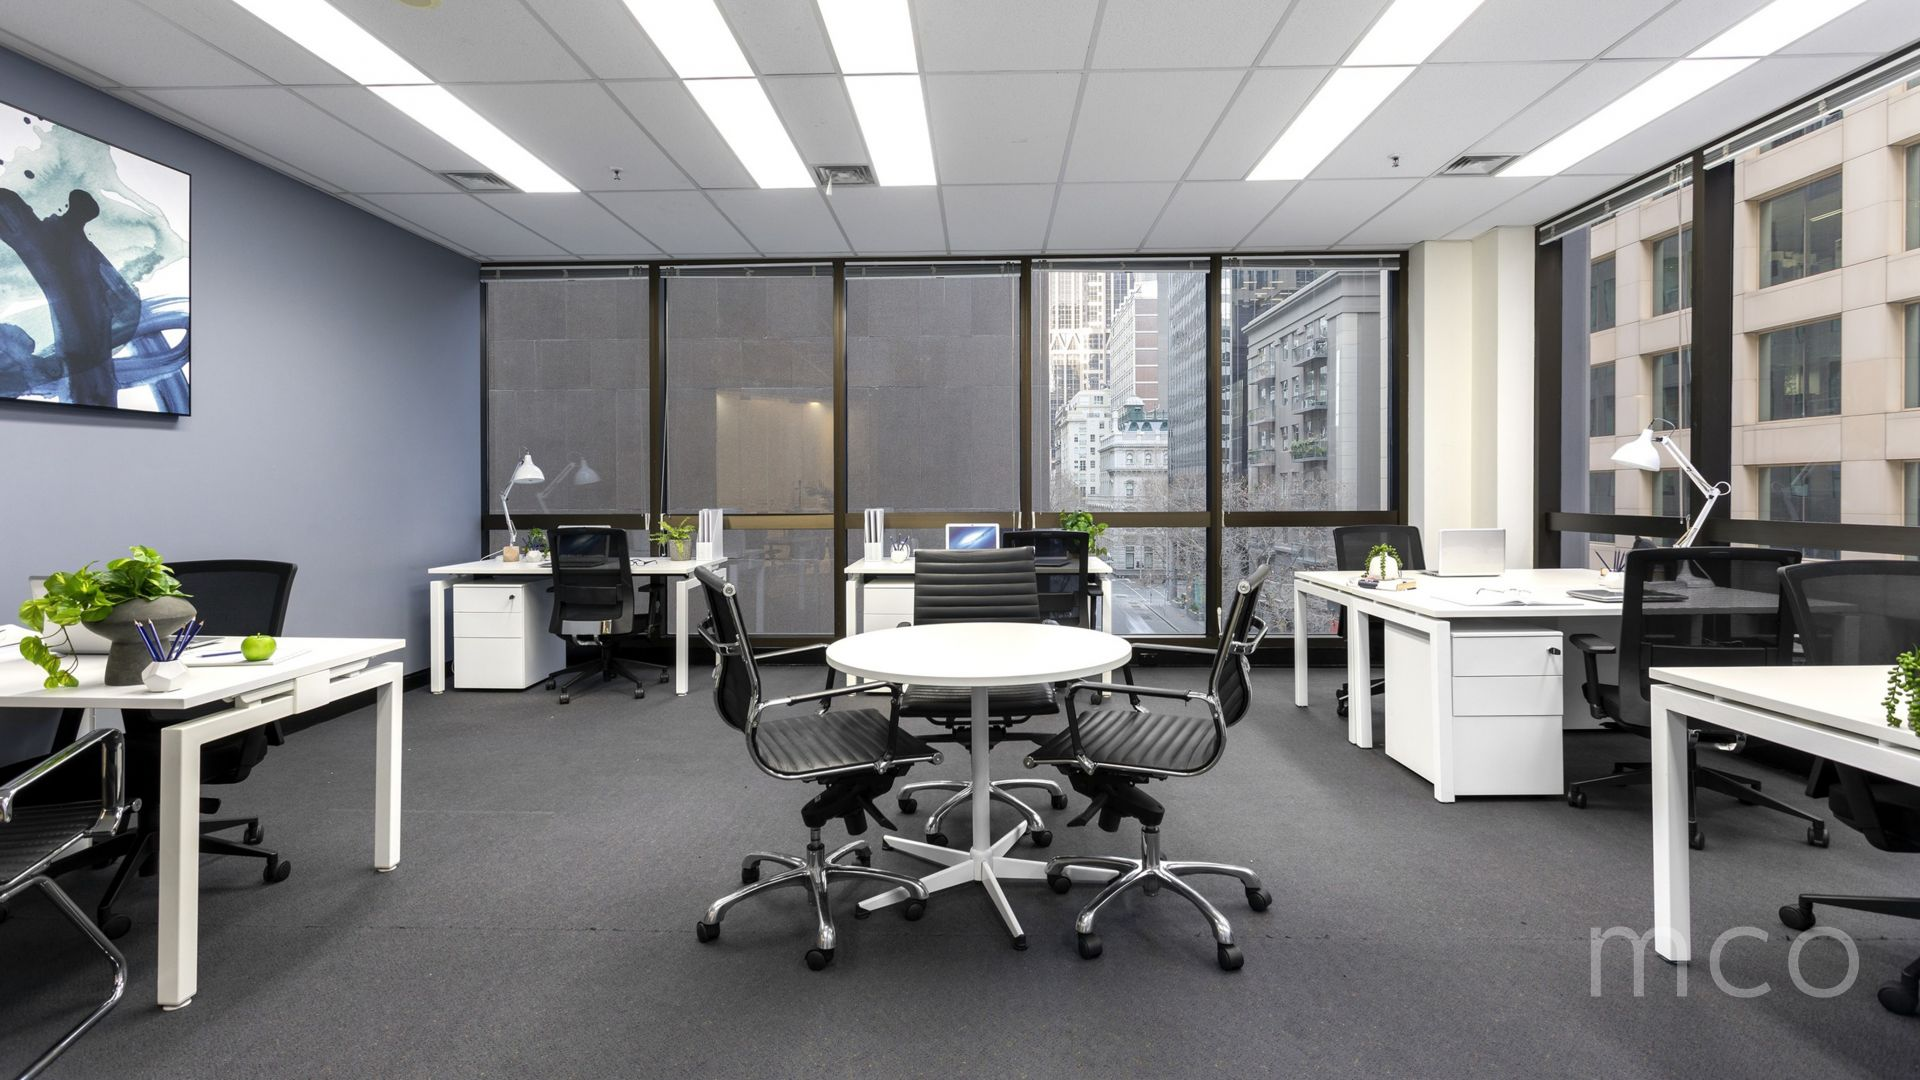 Exceptional opportunity to lease an office in the heart of the city